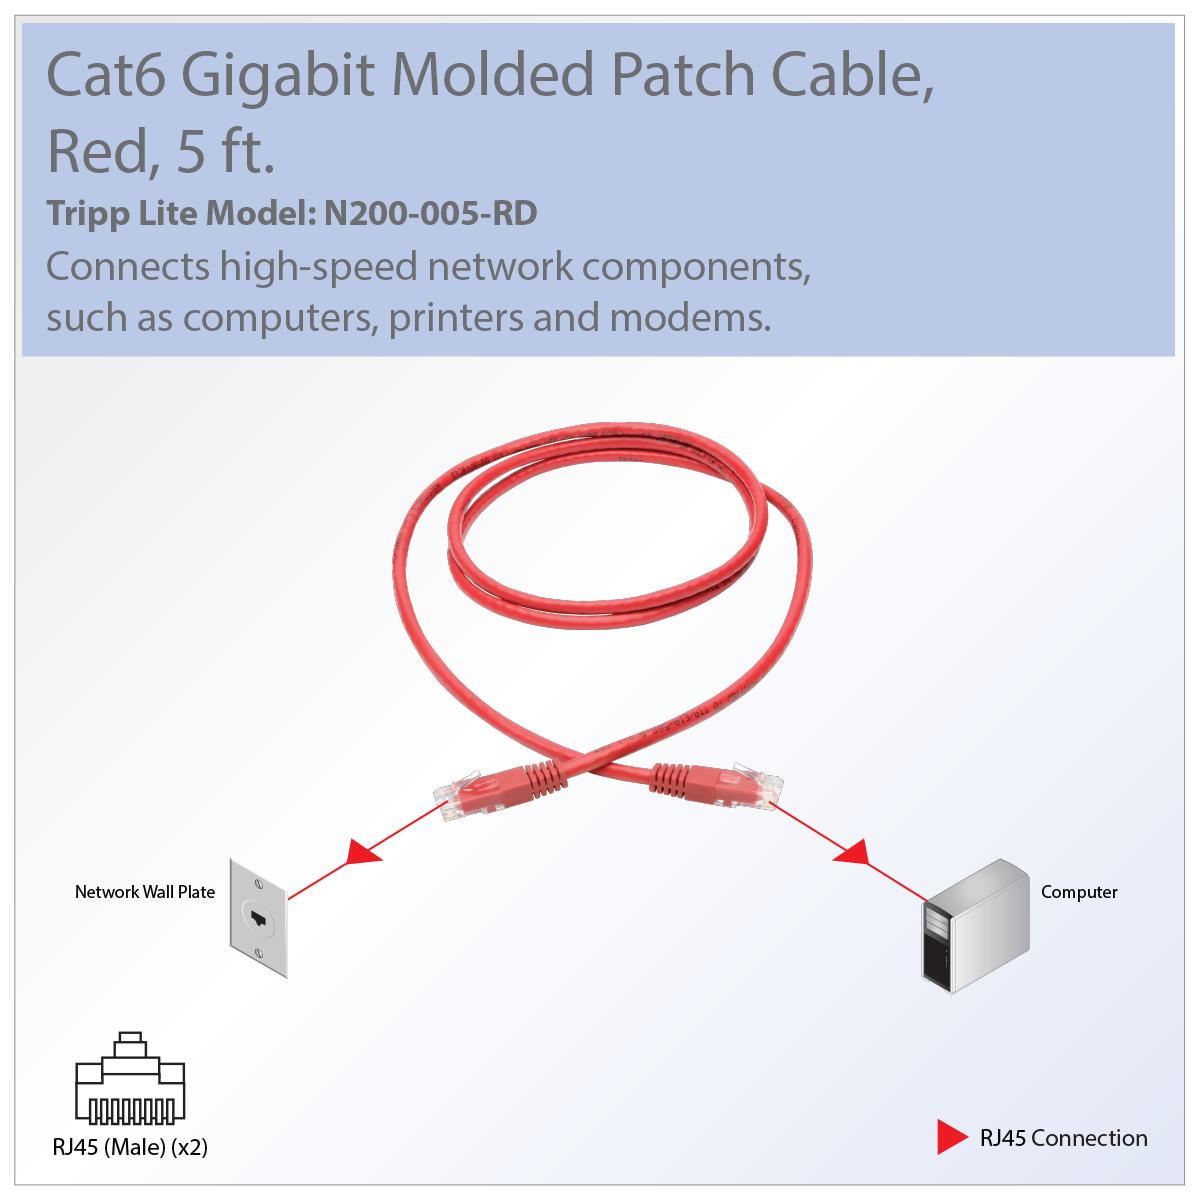 Provantage Tripp Lite N200 005 Rd Cat6 Cat5e Gigabit Patch Cable Diagram Great For Connecting Components In Bandwidth Heavy Home Office Networks